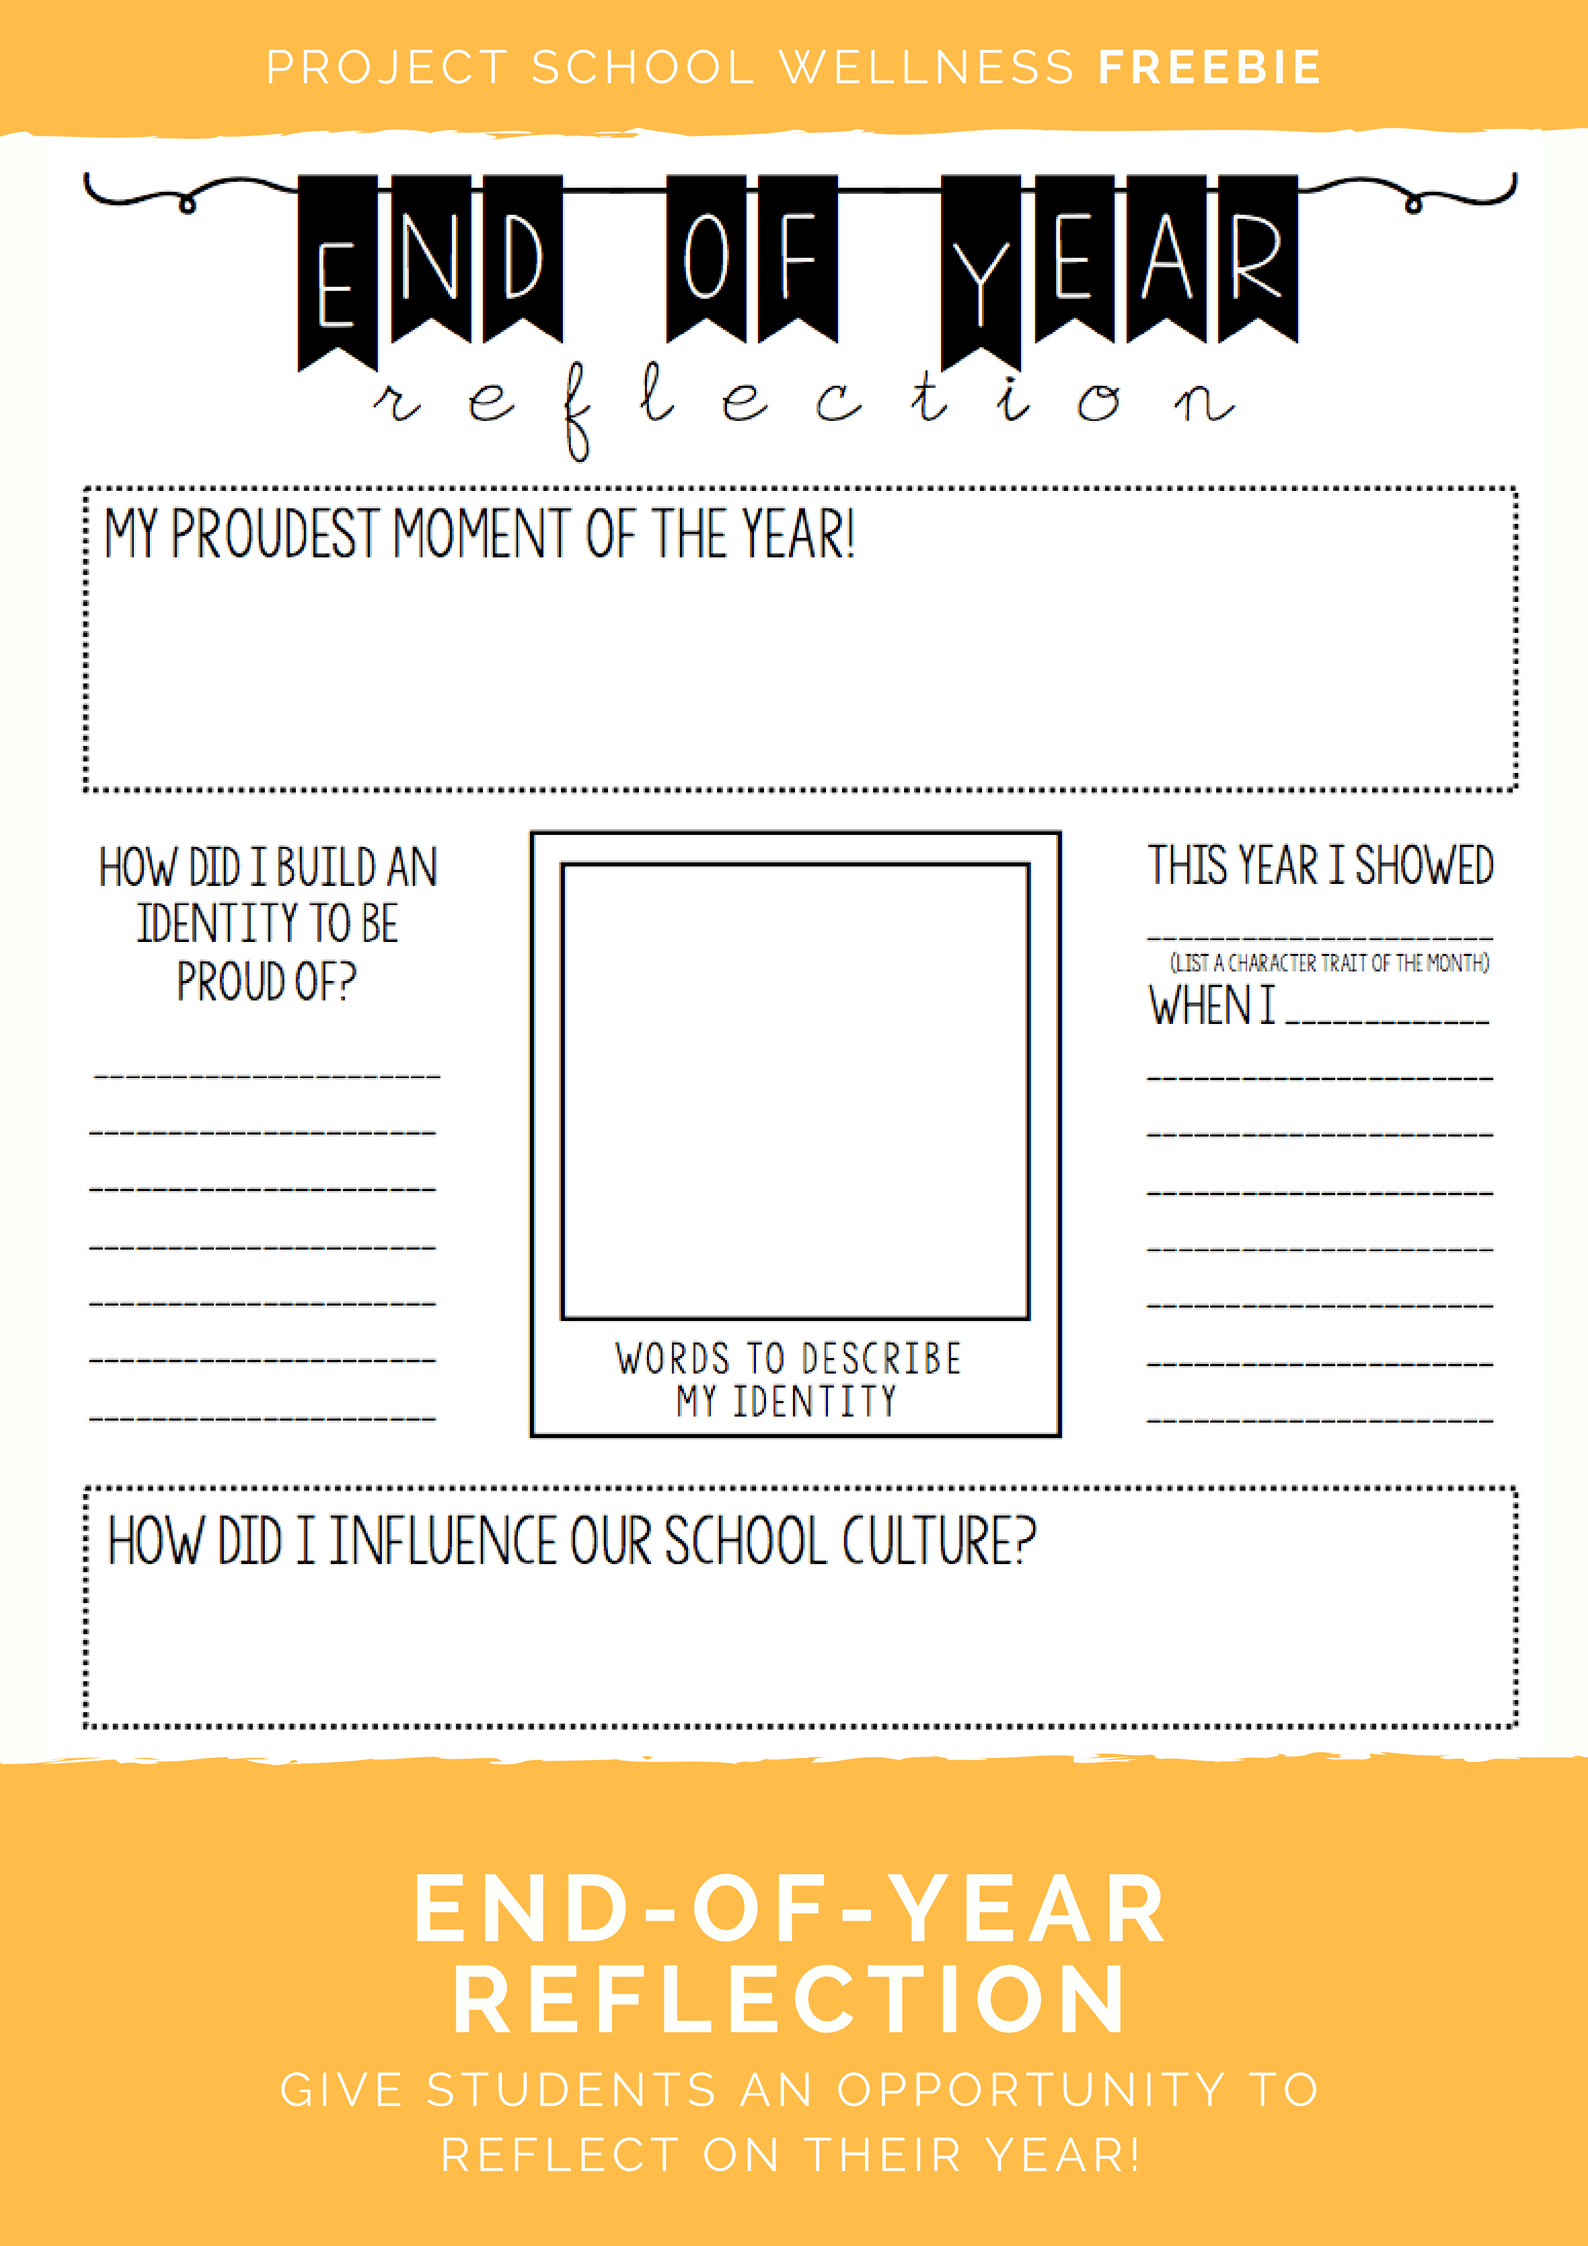 Check out this end-of-year reflection activity! This freebie is perfect for any elementary or middle school classroom! Click to download it at Project School Wellness!